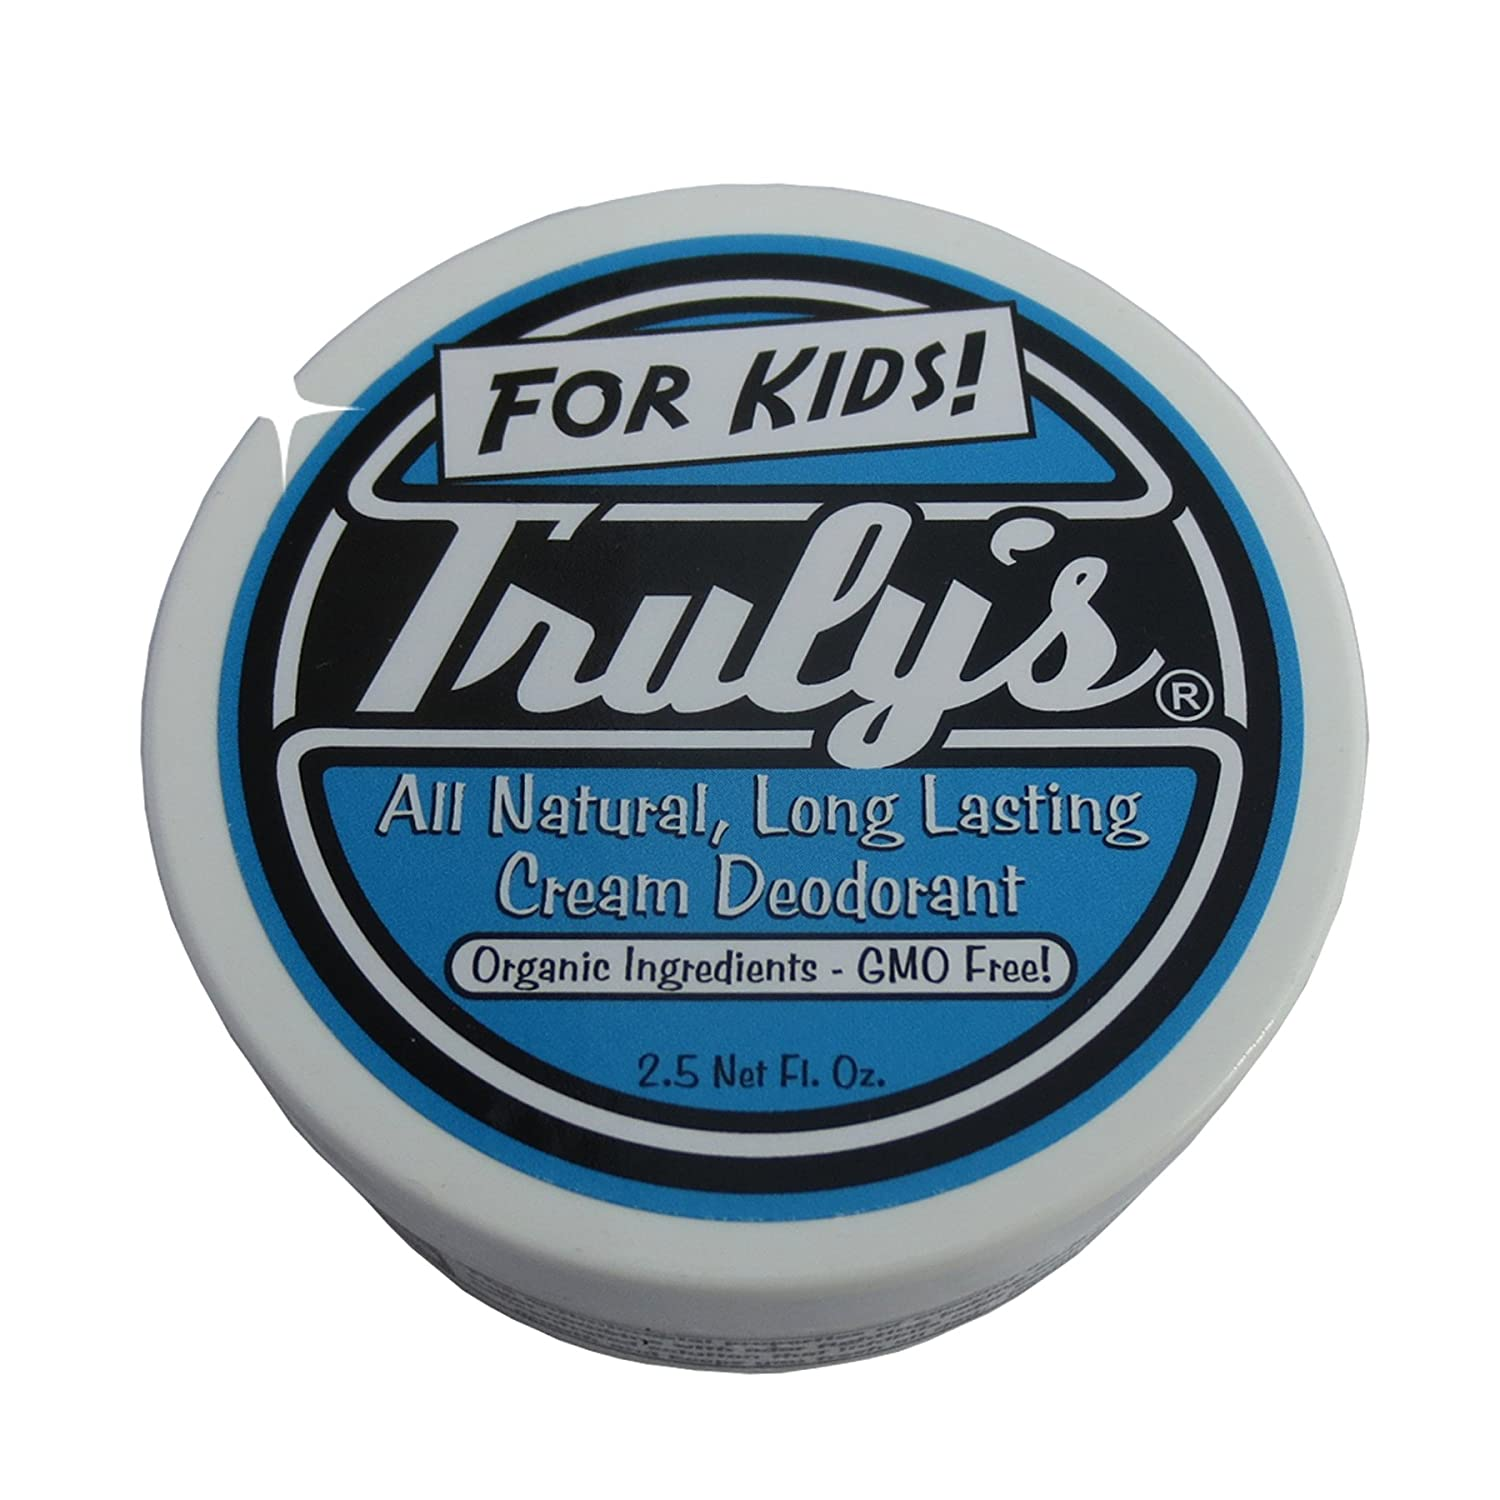 Top 13 Best Deodorant For Kids (2020 Reviews & Buying Guide) 8